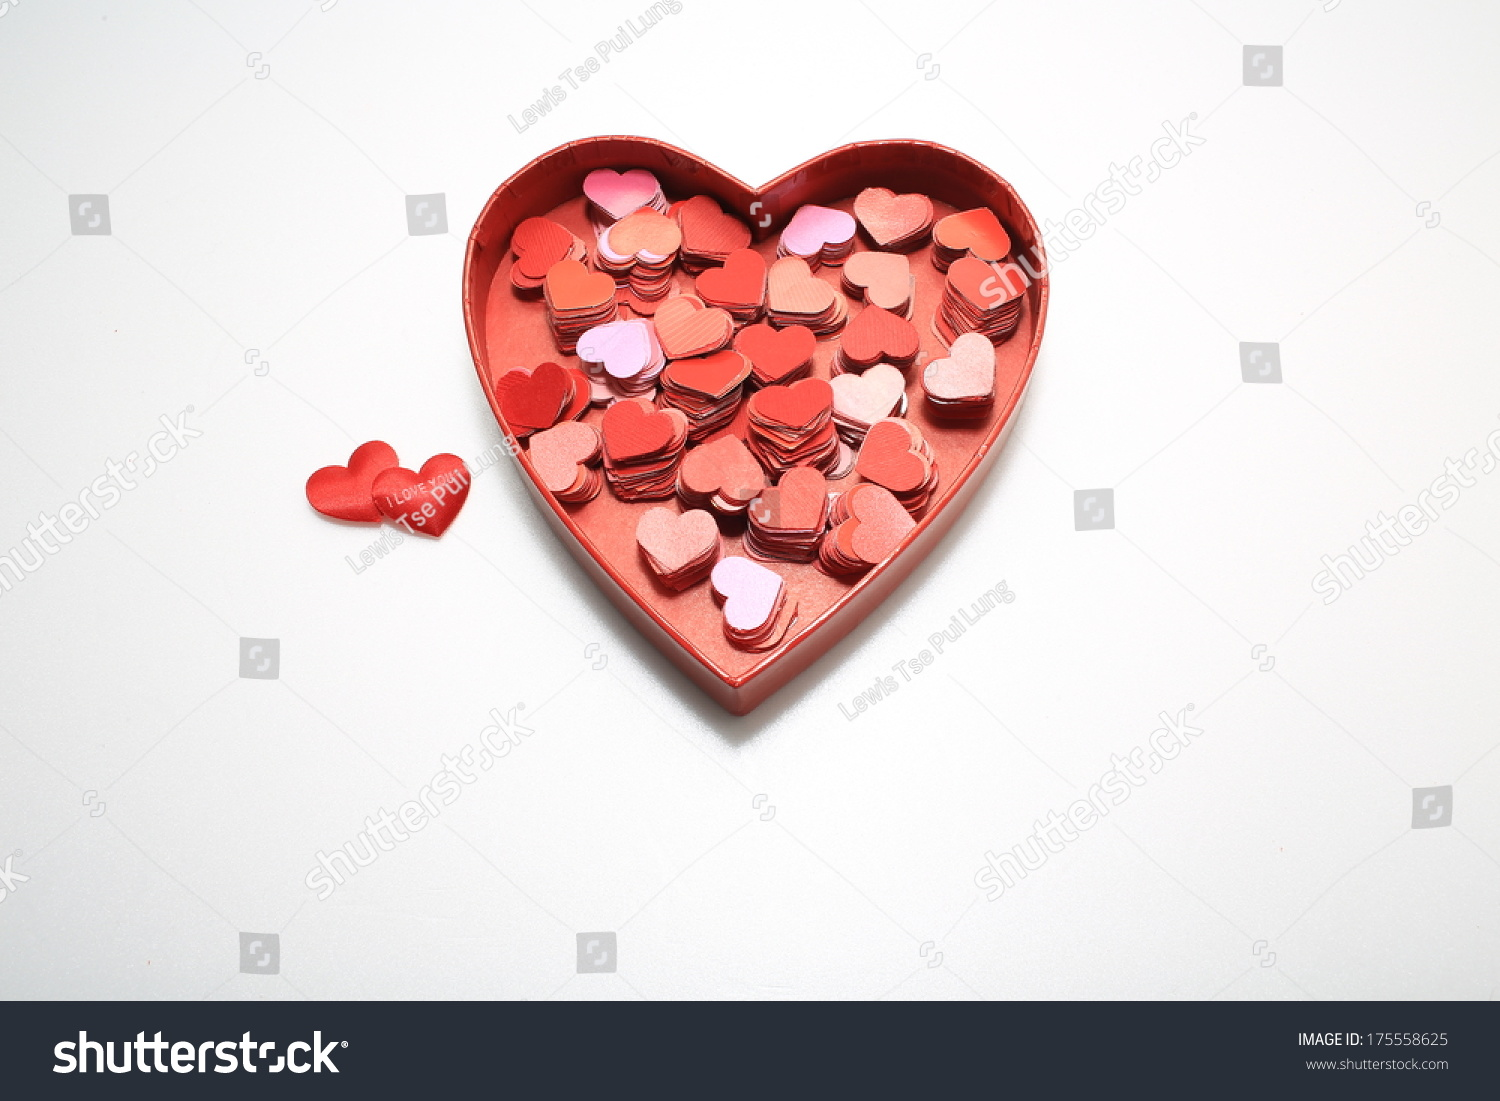 Big heart gift full small hearts stock photo 175558625 shutterstock big heart gift full of small hearts i love you or negle Image collections